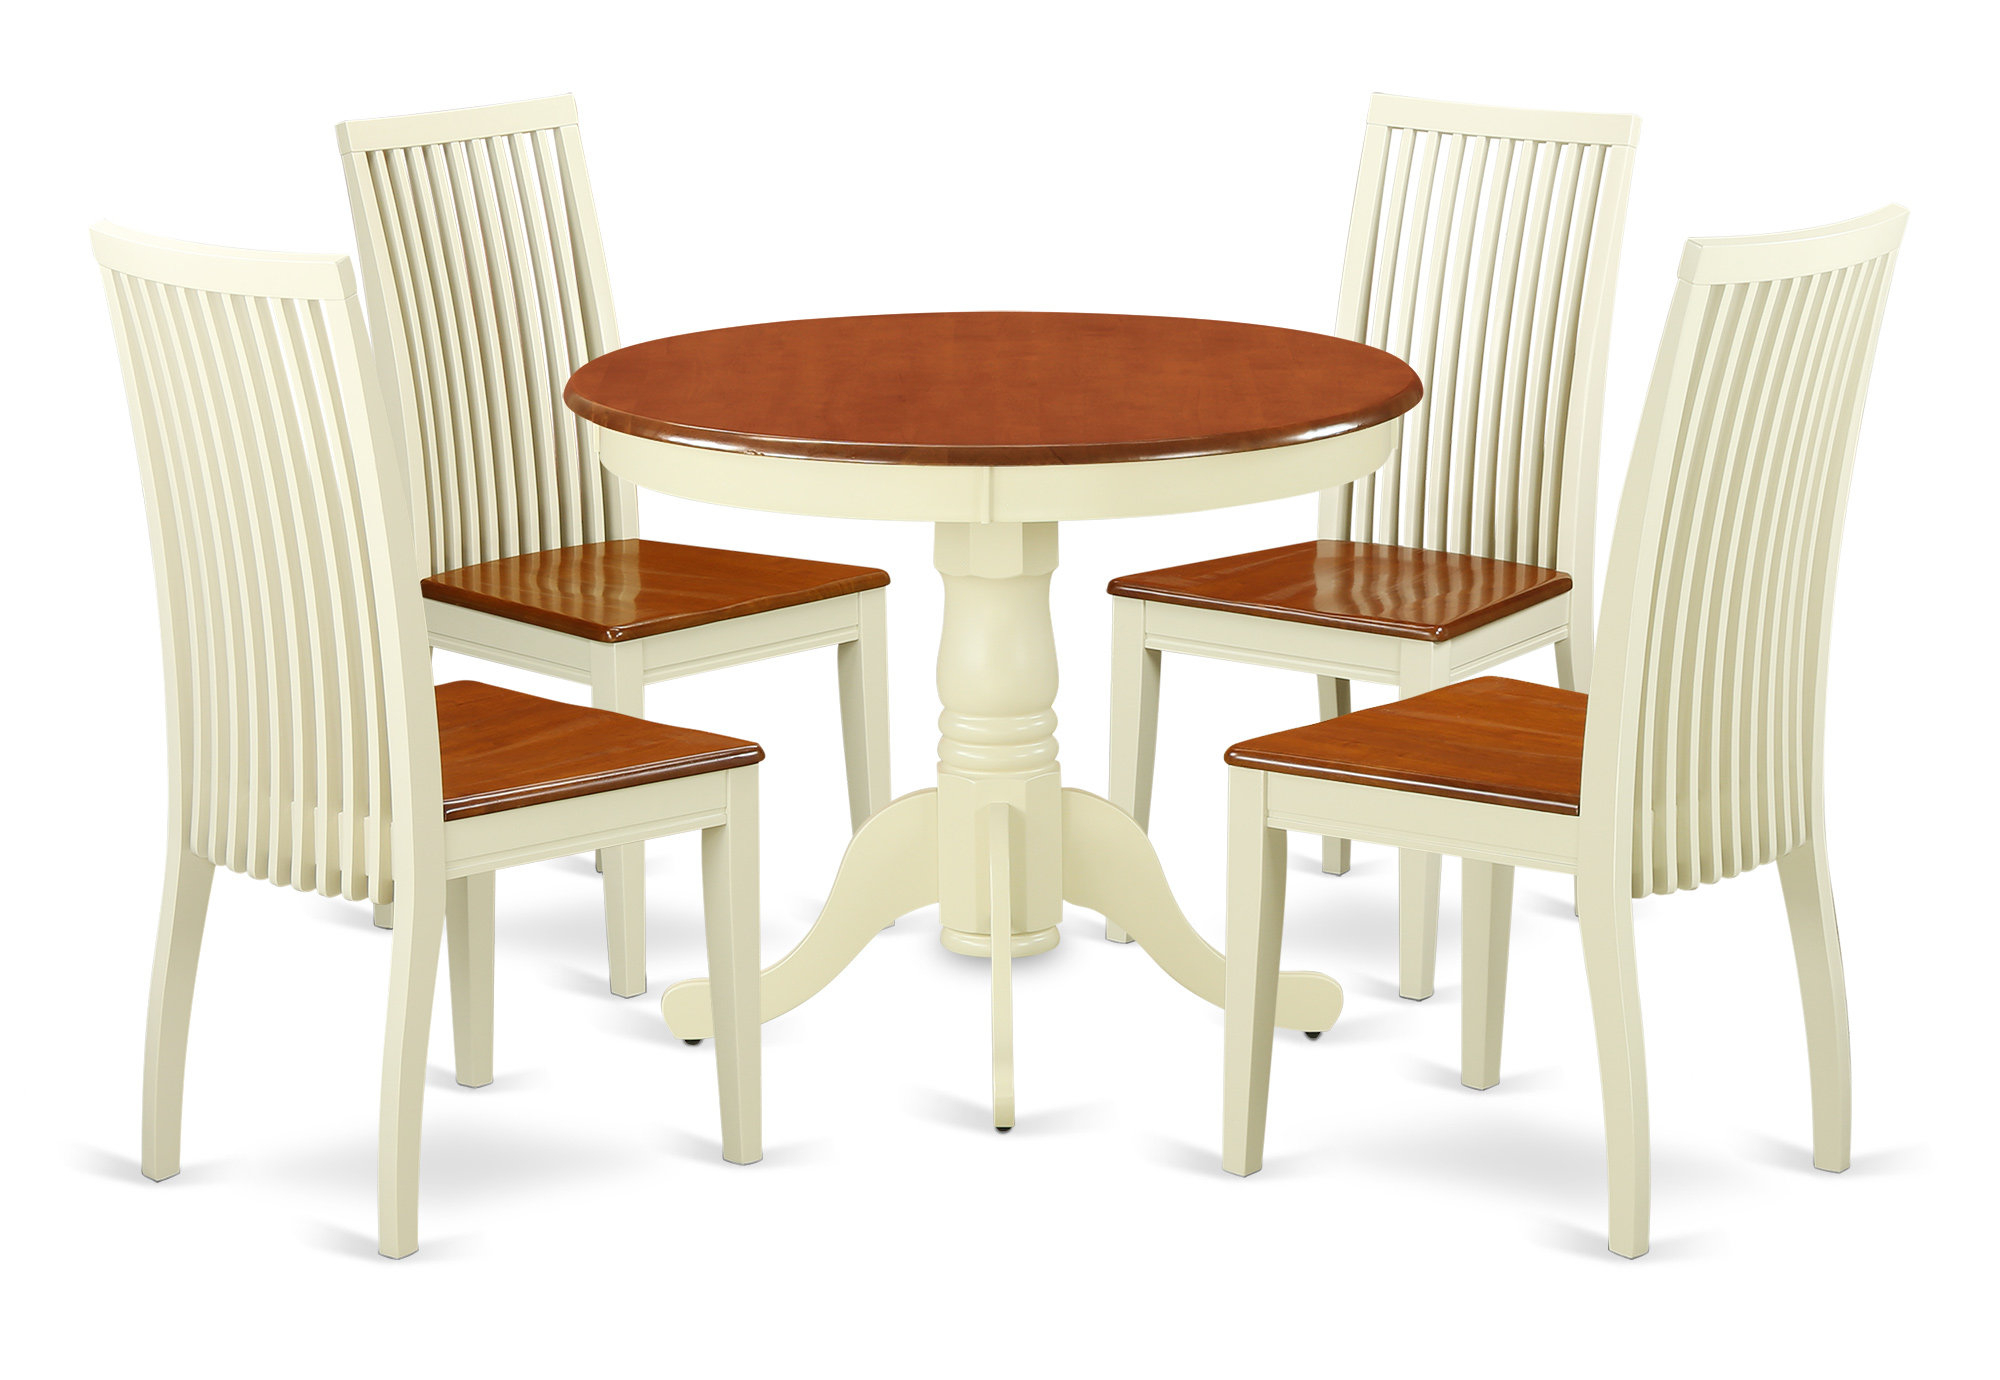 Most Up To Date August Grove Brendan 5 Piece Breakfast Nook Solid Wood Dining Set Inside 5 Piece Breakfast Nook Dining Sets (View 6 of 25)